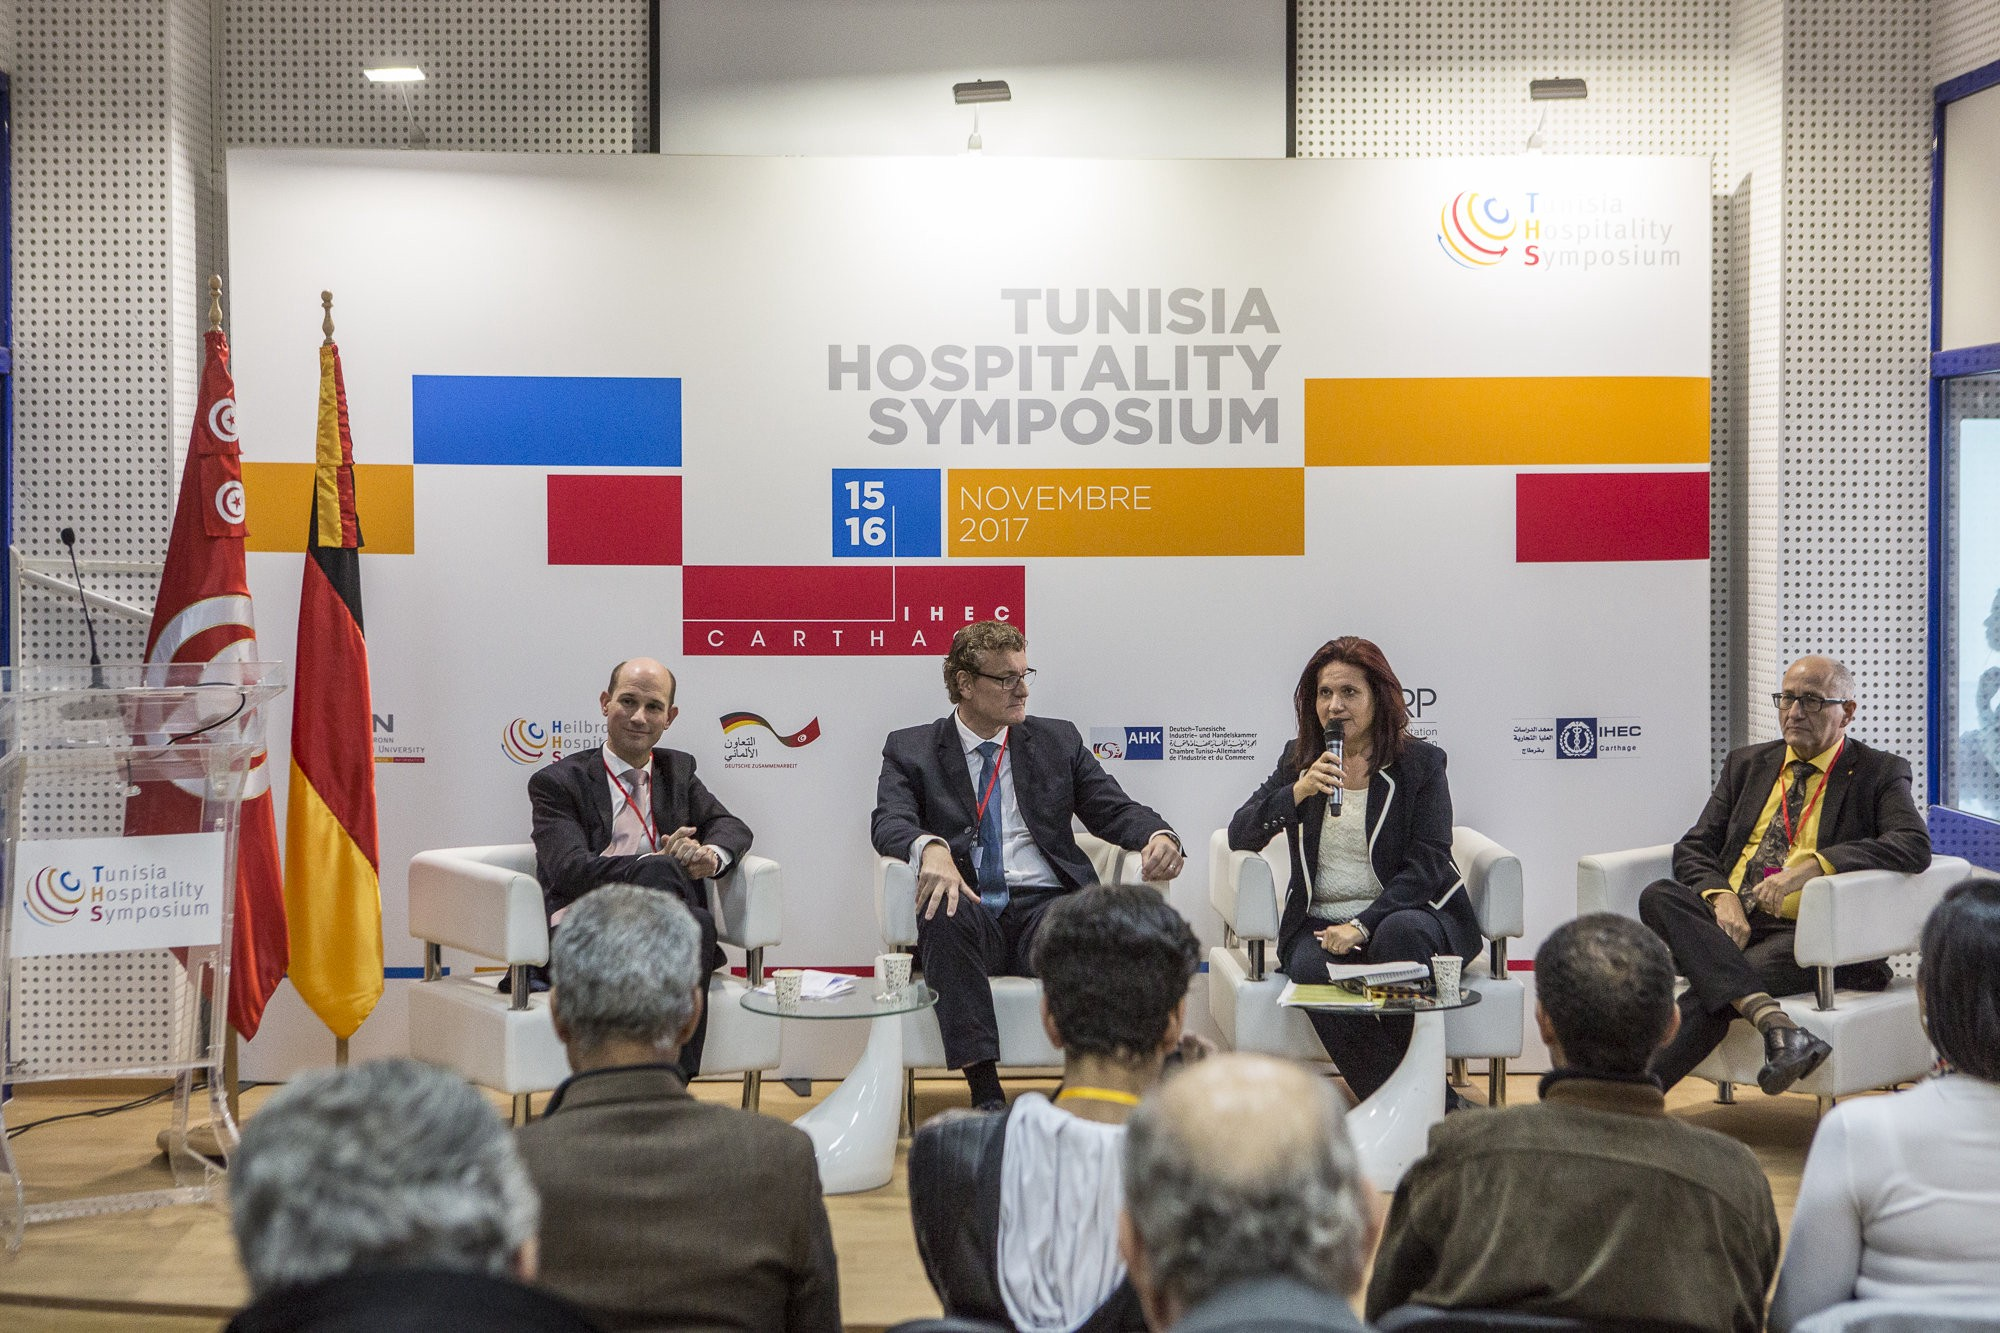 Tunisia Hospitality Symposium – Job2Future